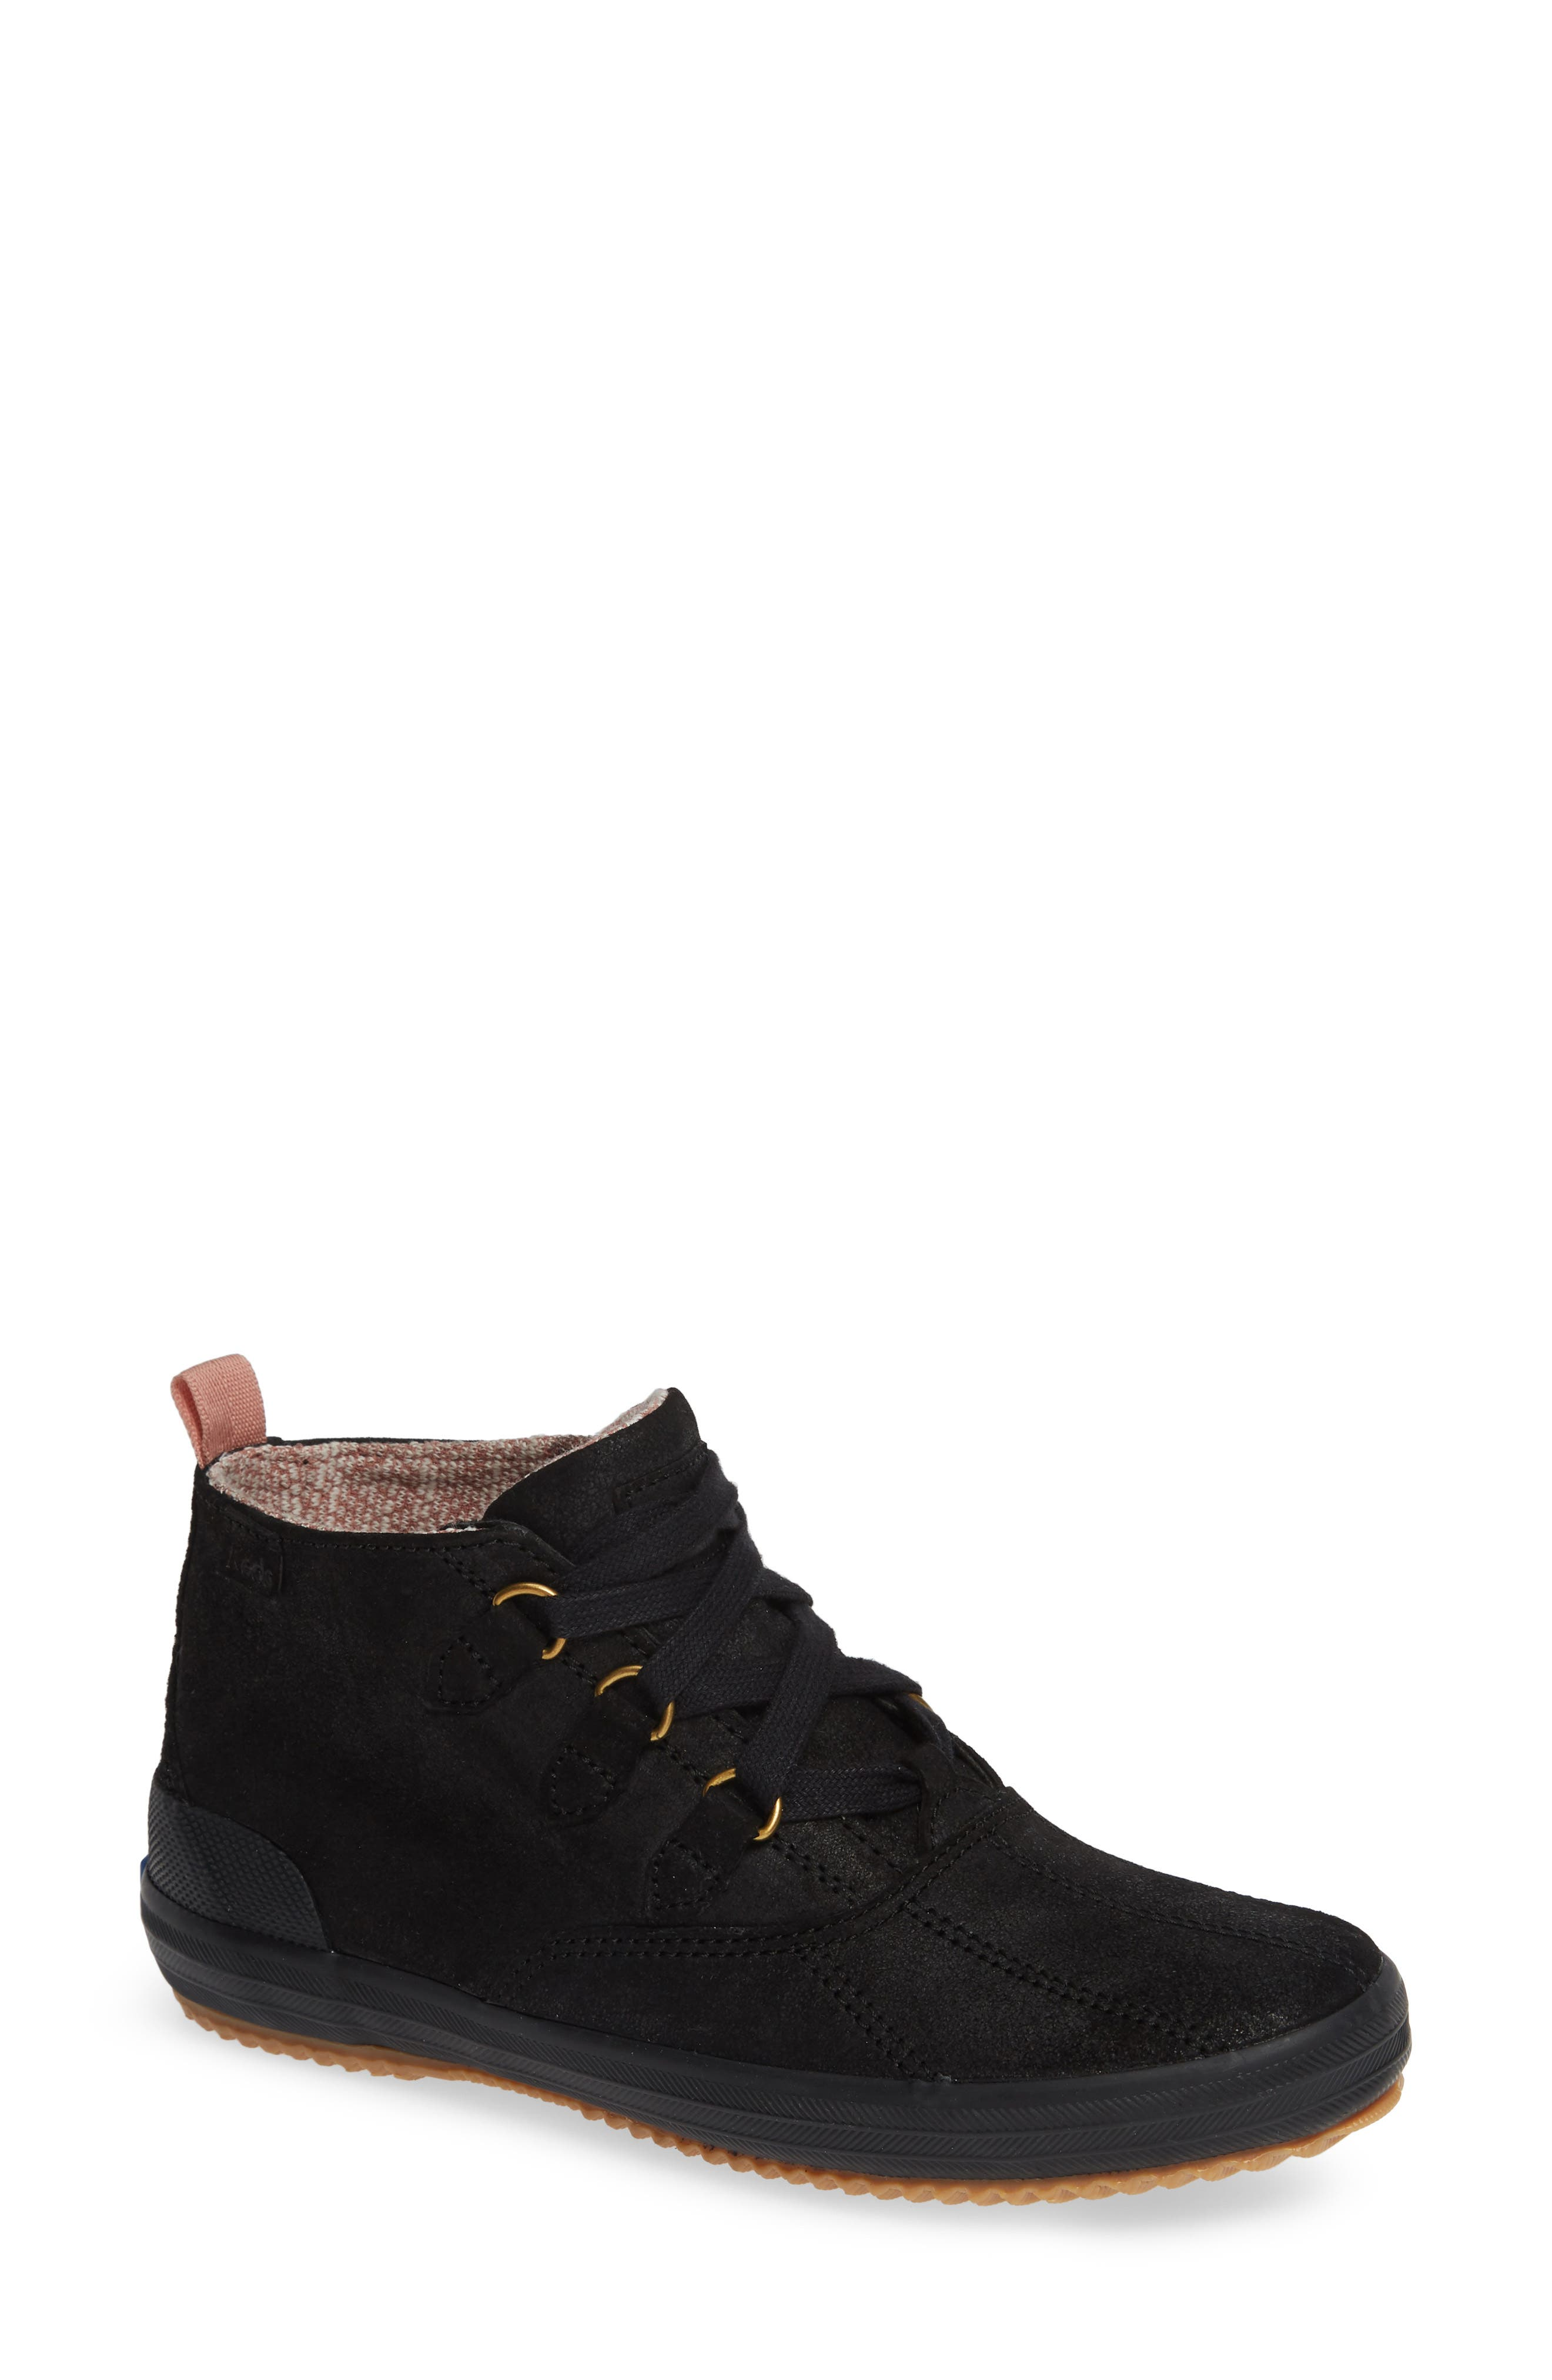 Scout Chukka Boot,                             Main thumbnail 1, color,                             BLACK SUEDE